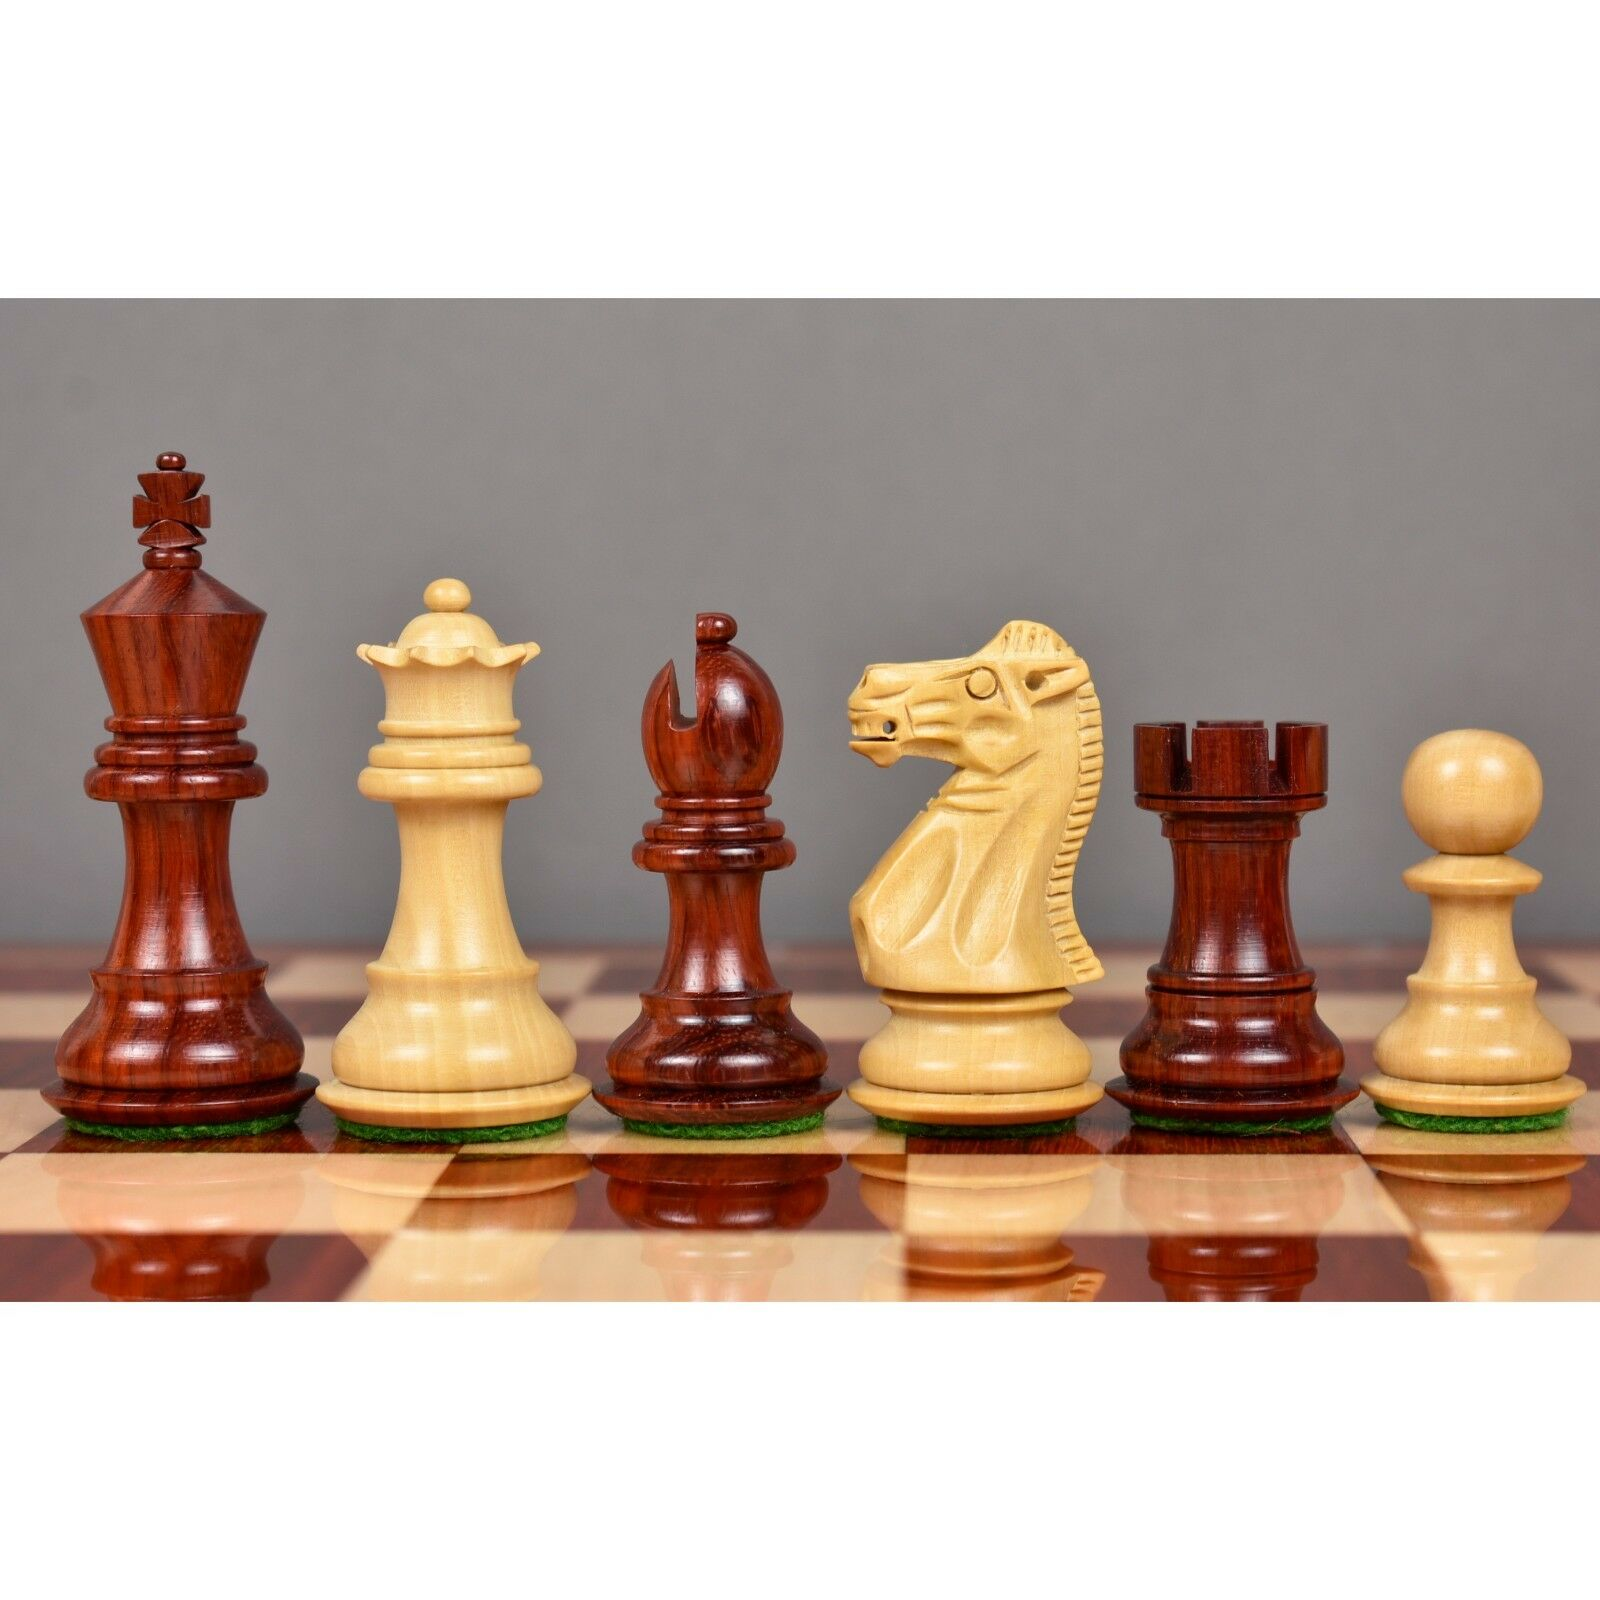 3.1  Pro Staunton Luxury Chess Pieces Only set - Double Weighted Bud pink Wood